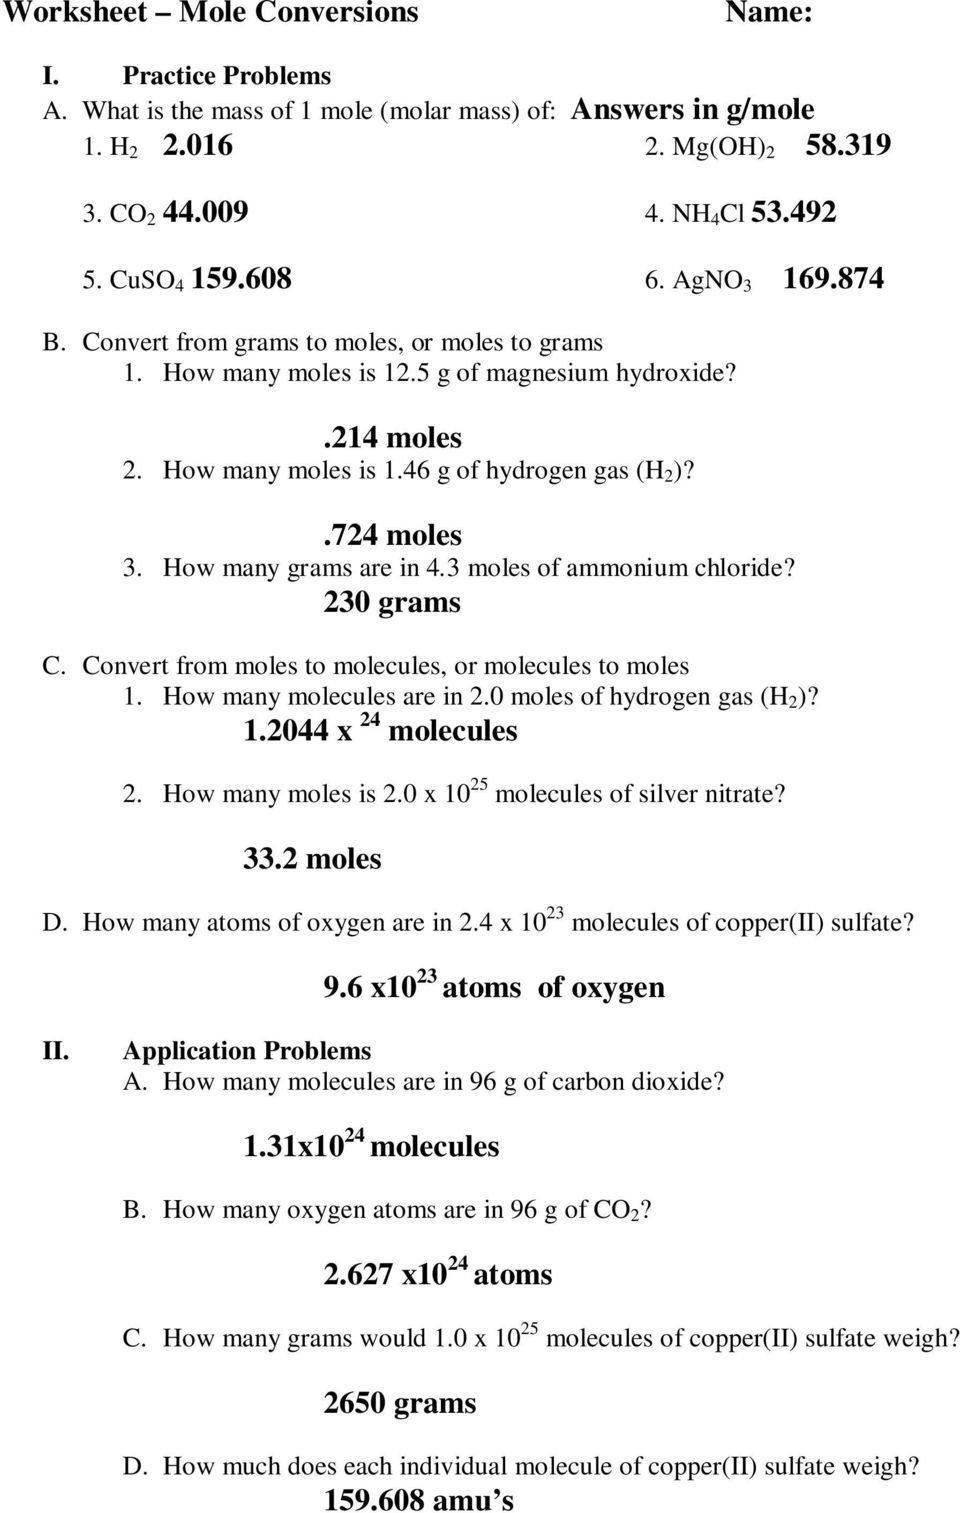 Molar Conversion Worksheet Answers How To Find Your Windows 10 Product Key In 2020 Mole Conversion Molar Mass Free Worksheets For Kids